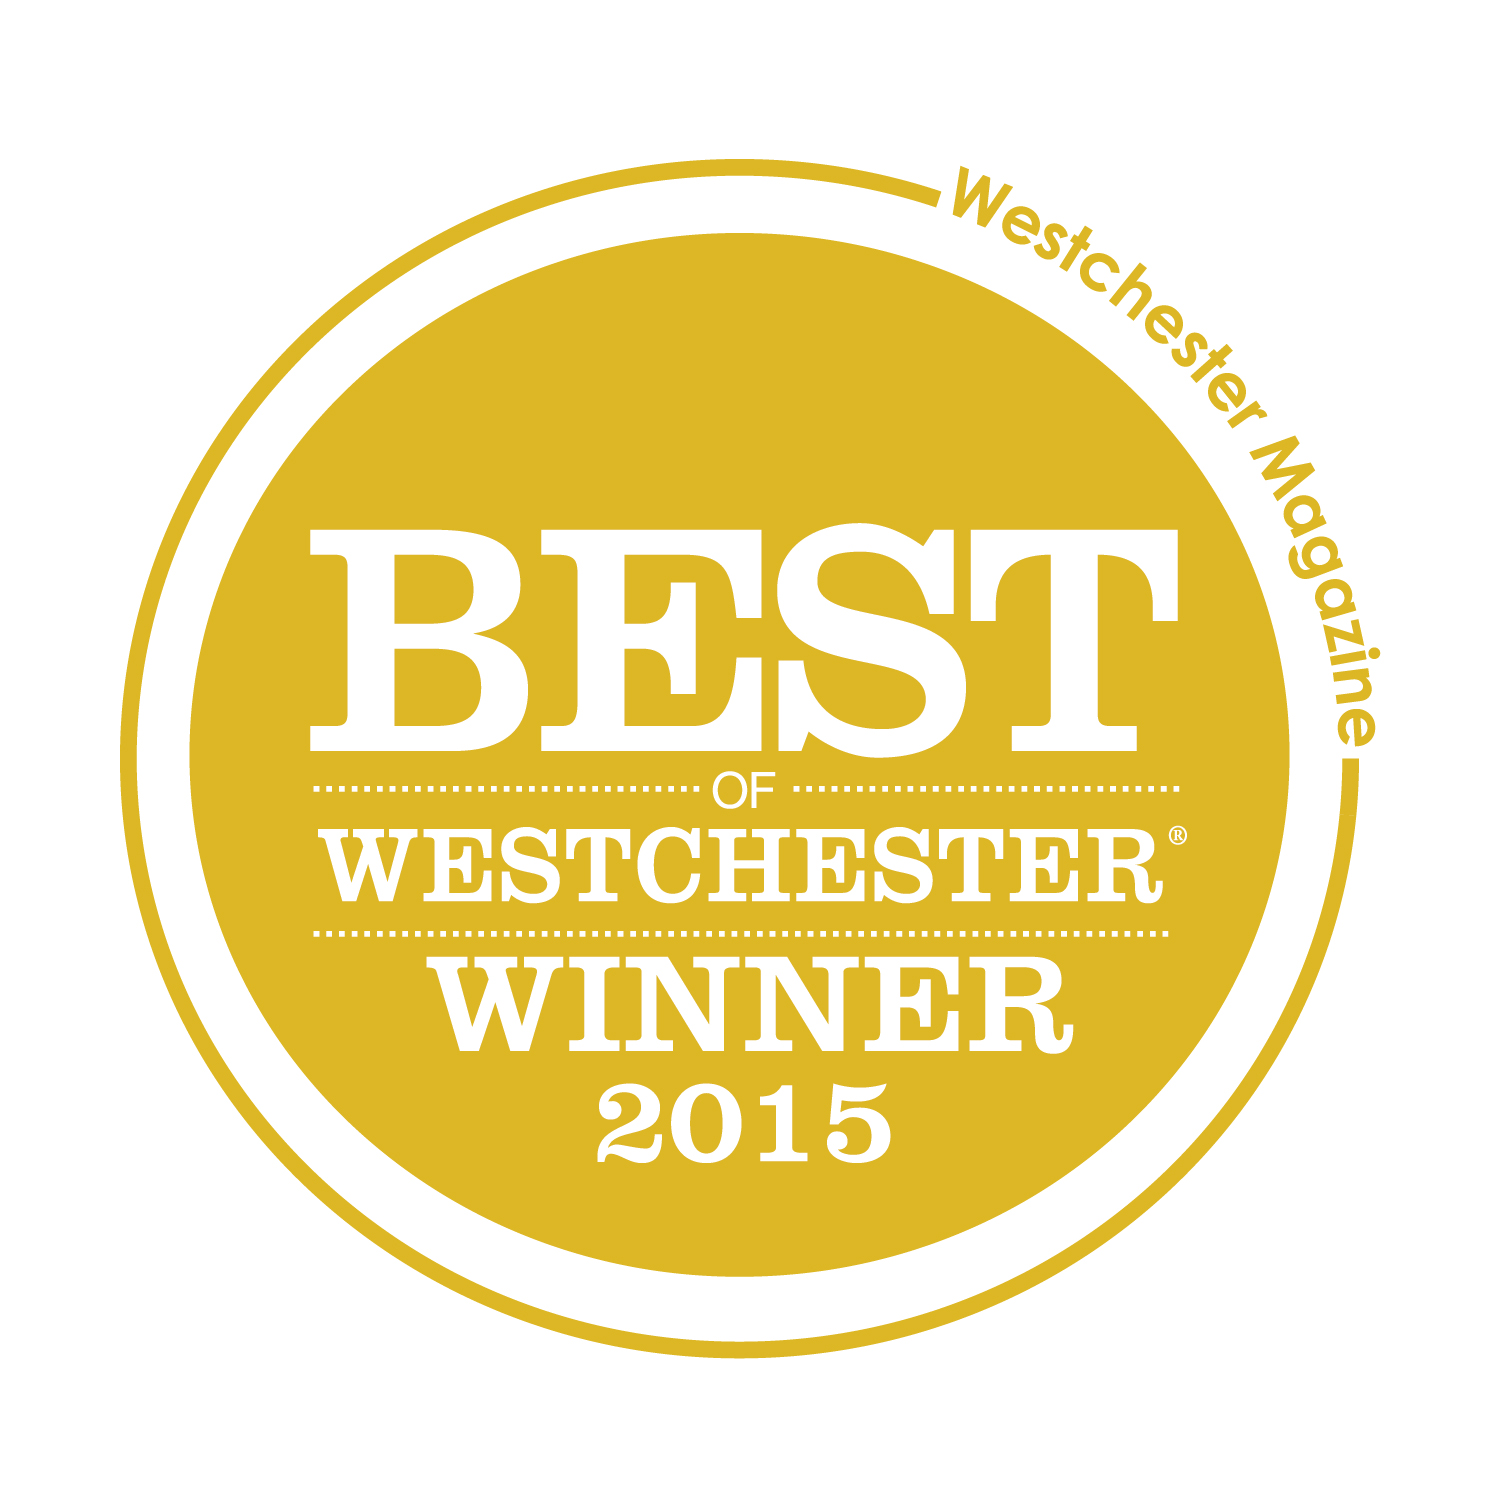 Lagond Music School: Best of Westchester 2015